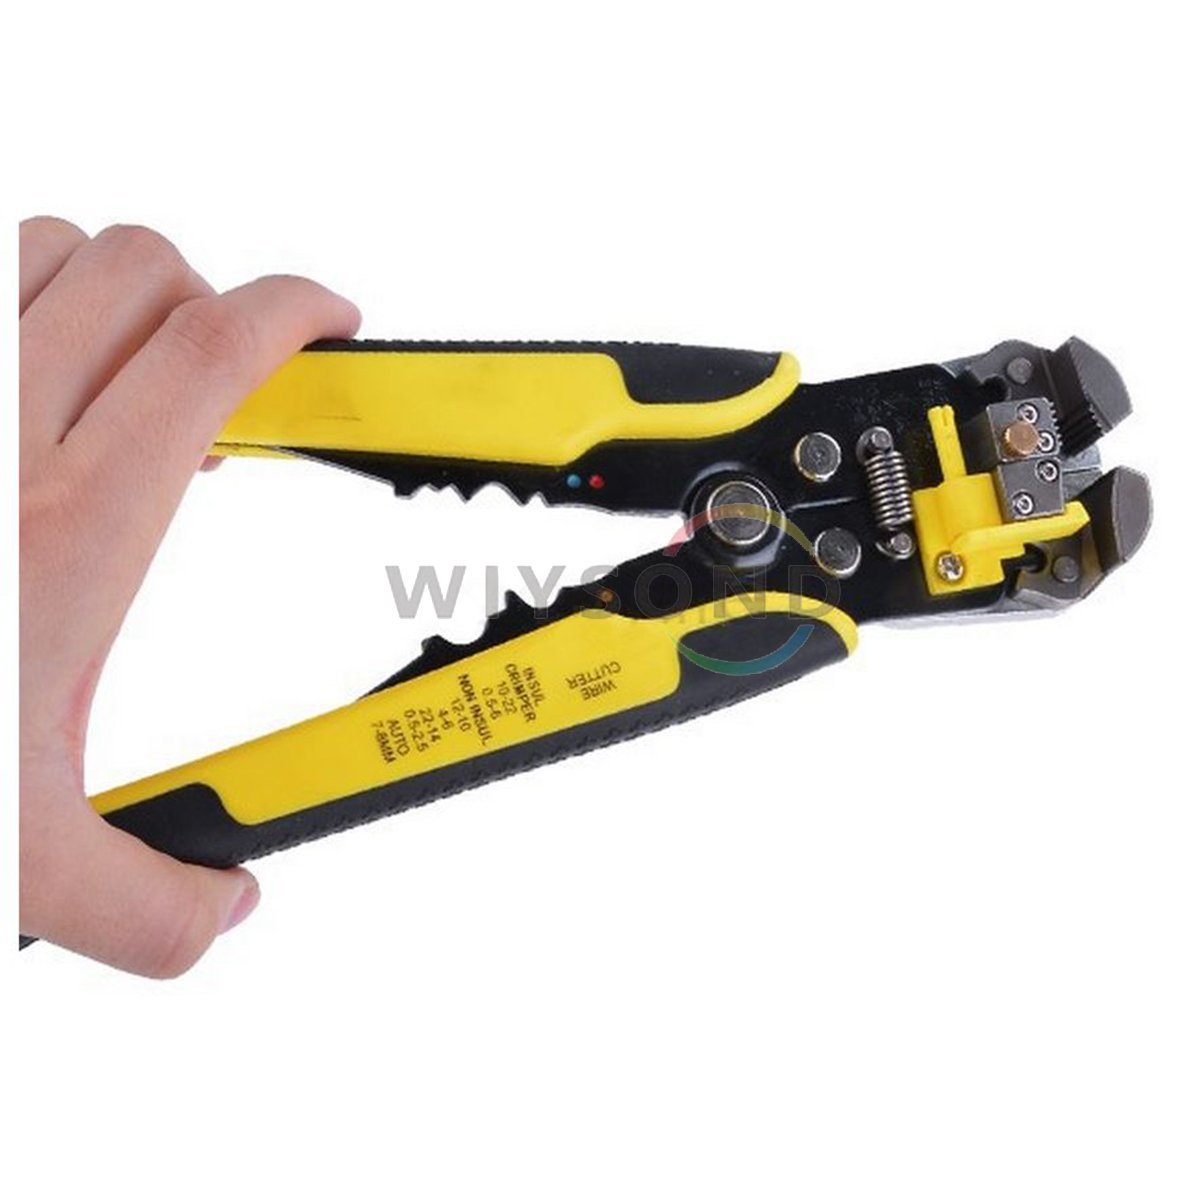 Wiysond Professional Automatic Wire Stripping Tool Self-adjusting ...